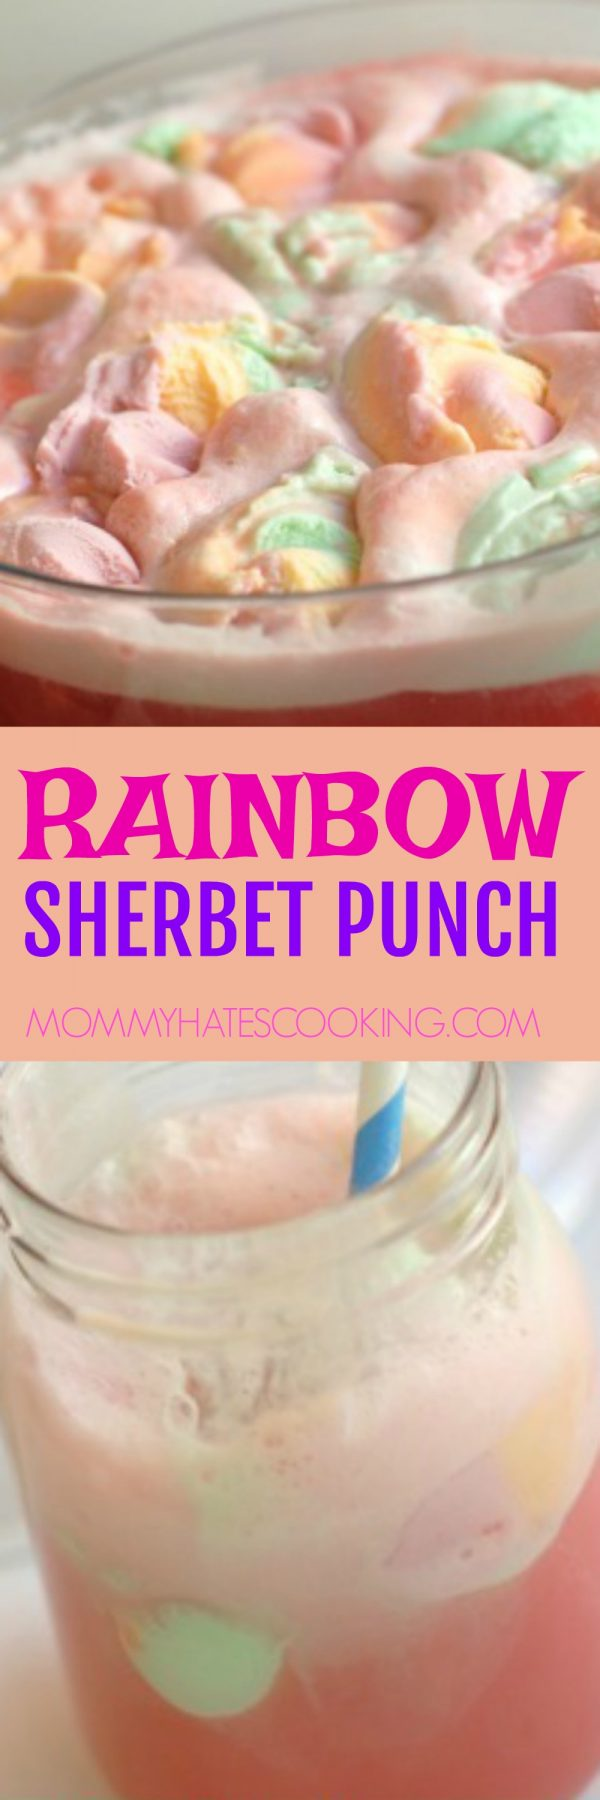 RAINBOW SHERBET PUNCH - MOMMY HATES COOKING